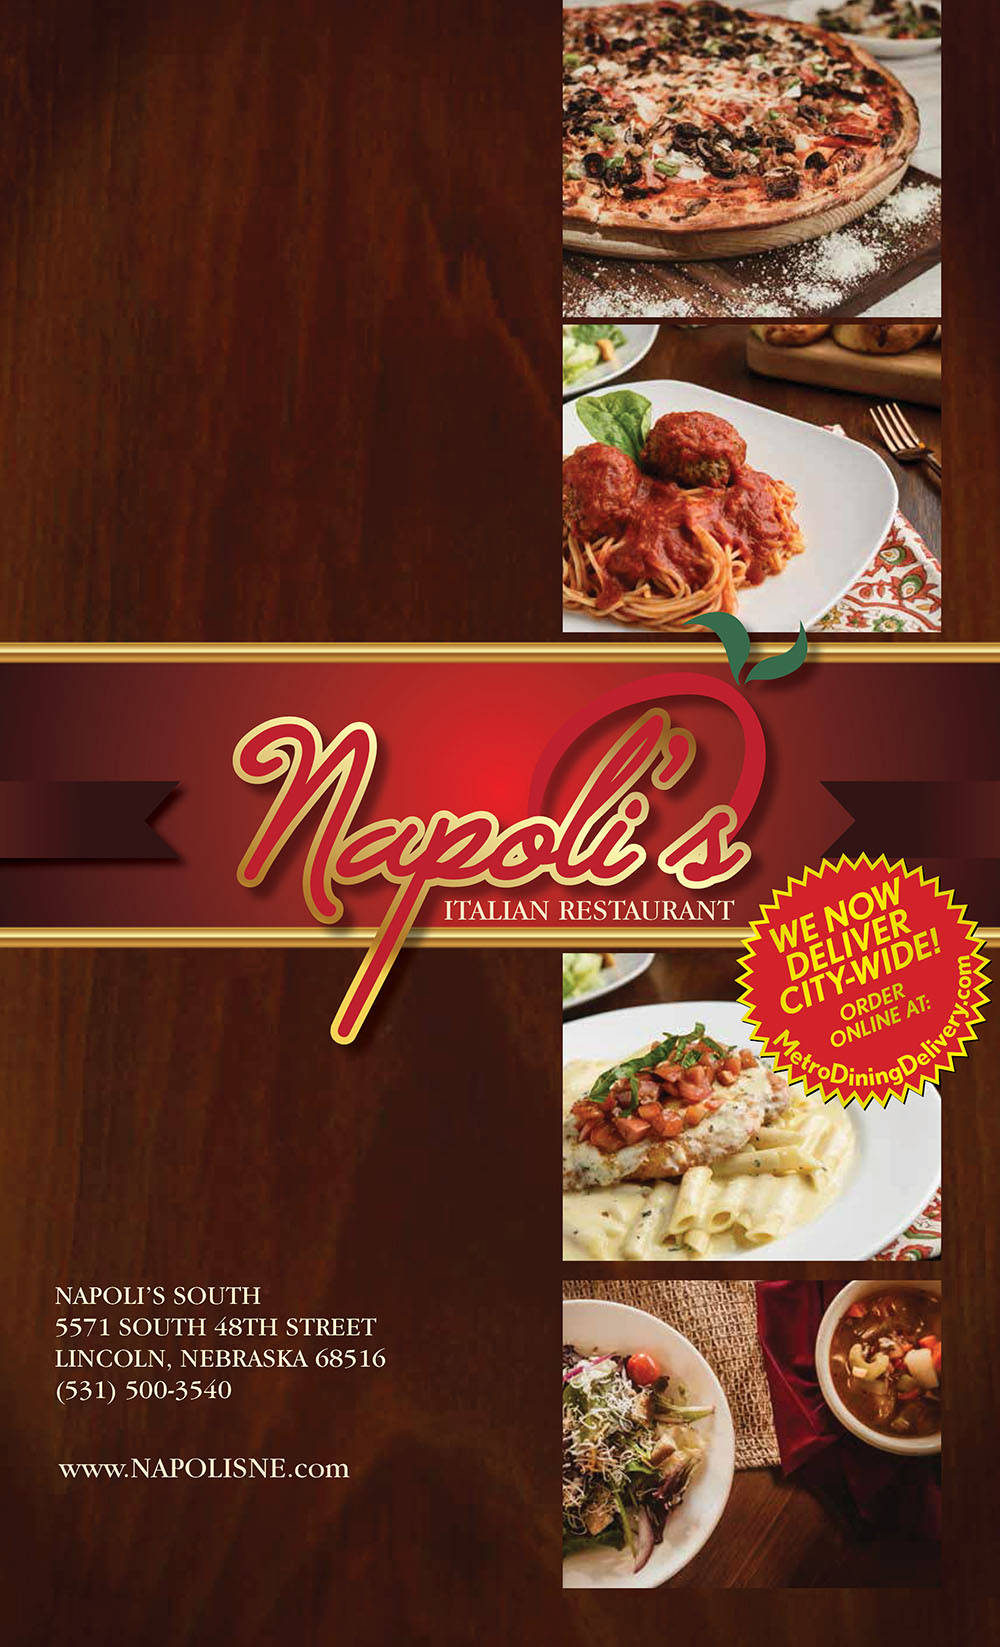 Napoli's Italian Restaurant | Dinner Menu | Delivery | Order Online |  City-Wide Delivery